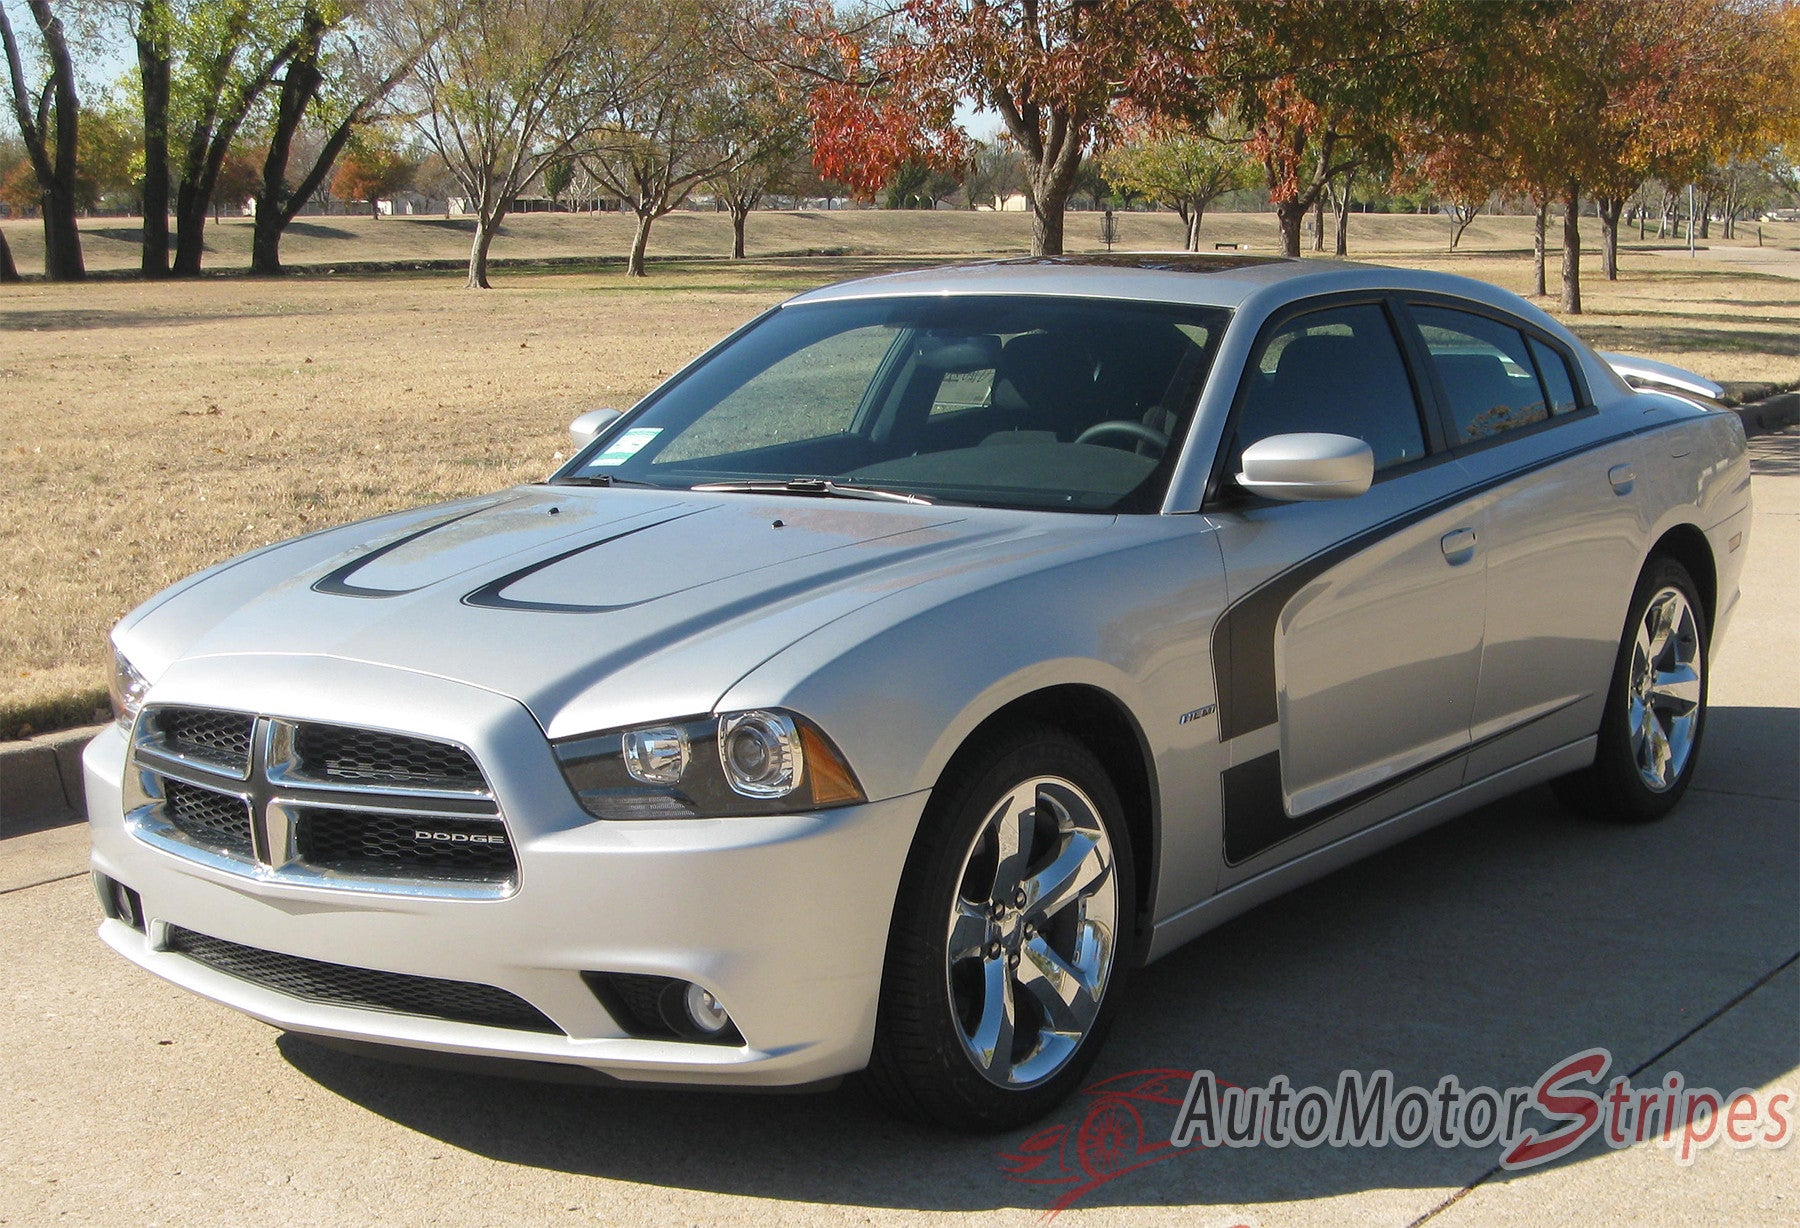 2014 dodge charger rt decals for sale autos post. Black Bedroom Furniture Sets. Home Design Ideas